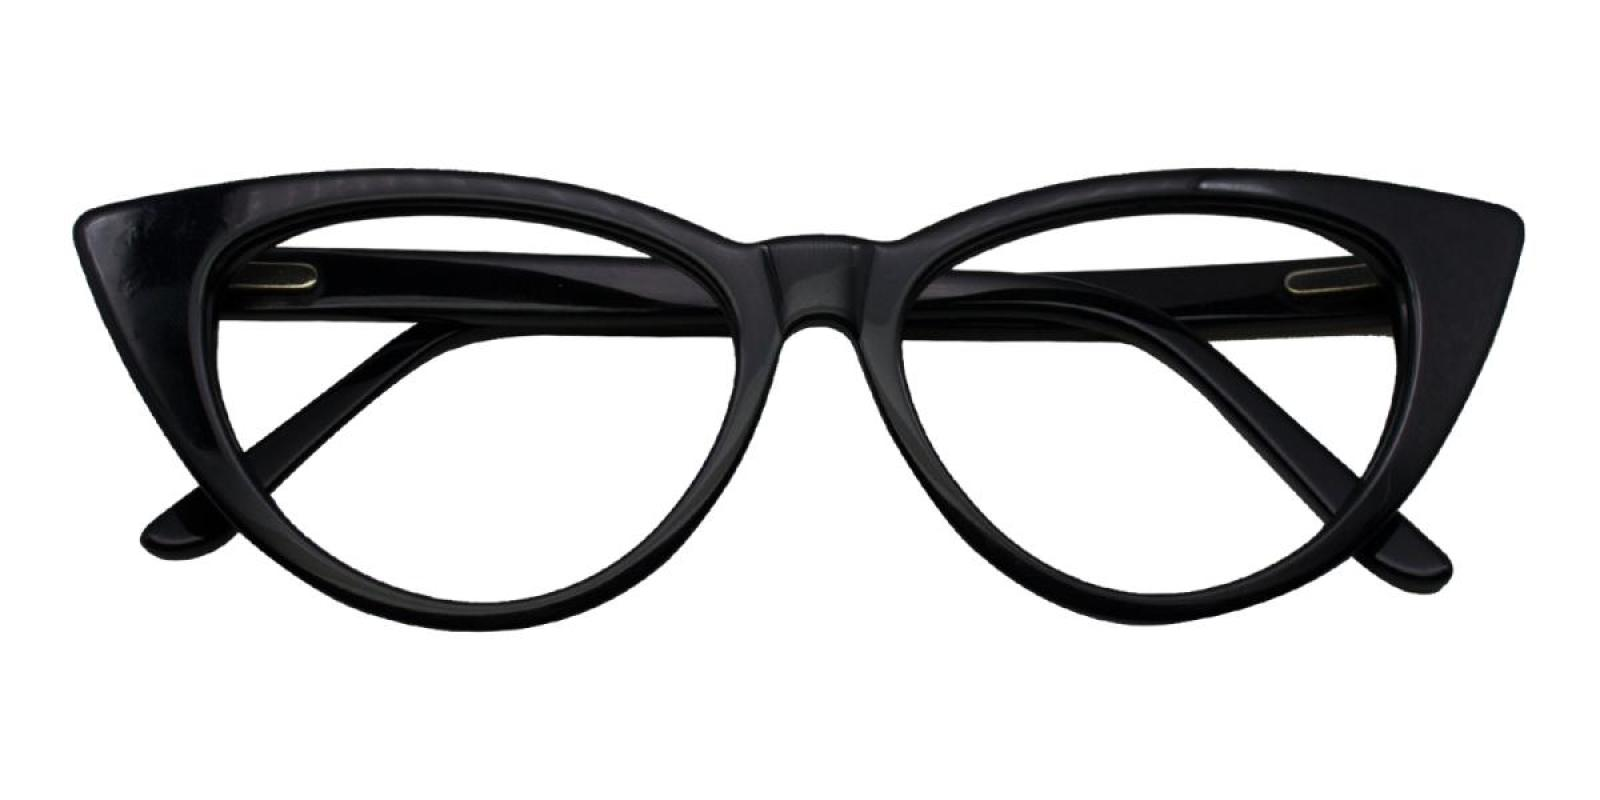 Charm-Black-Cat-Acetate-Eyeglasses-detail